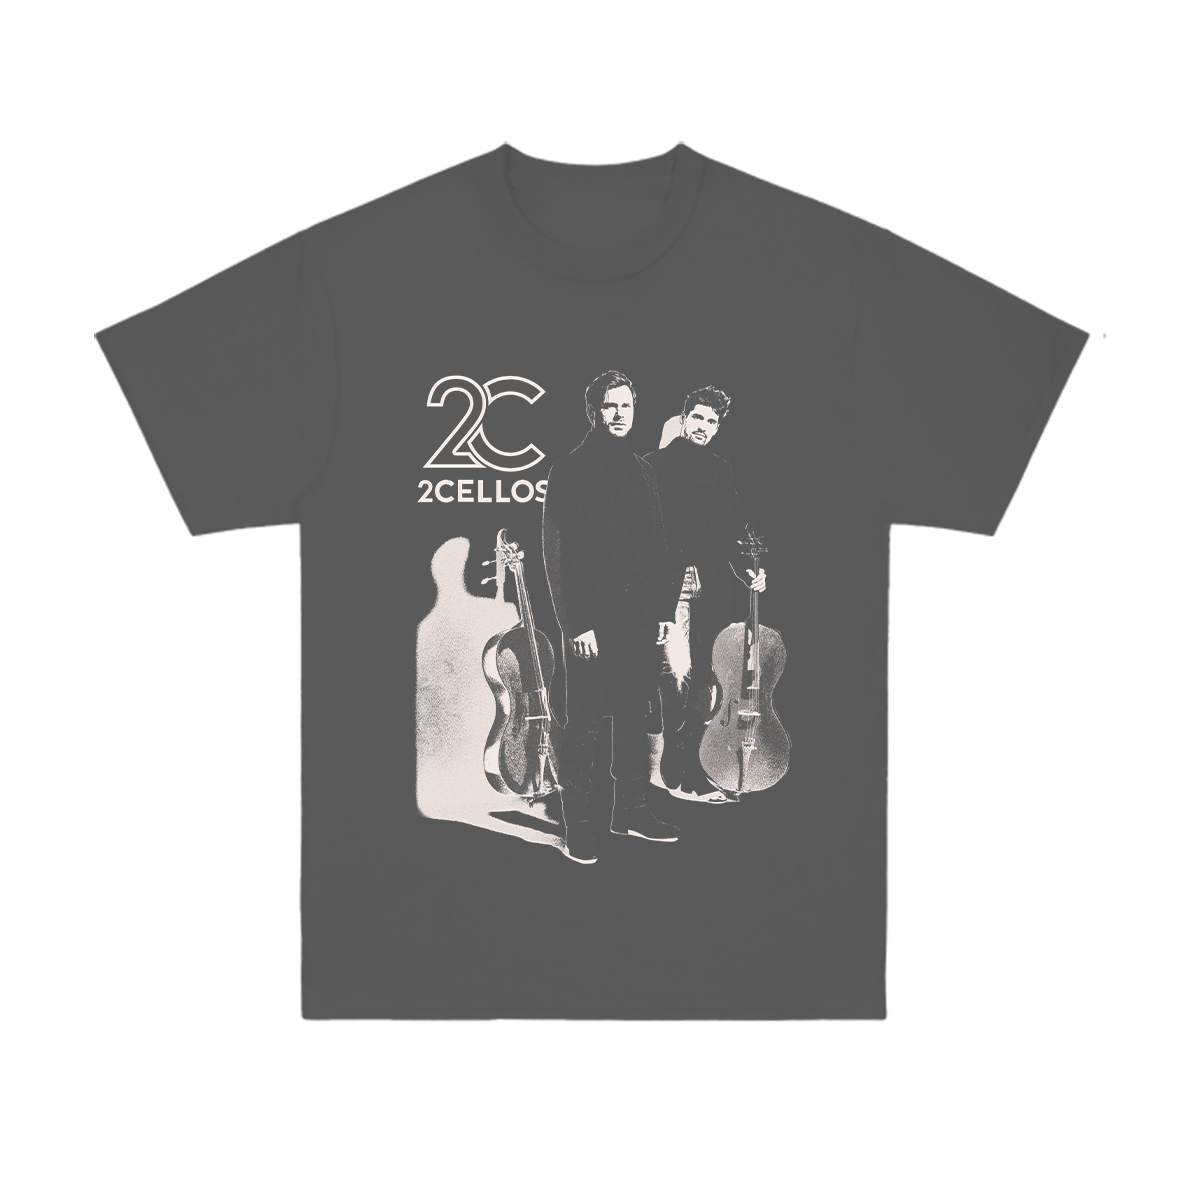 Buy Online 2 Cellos - 2CELLOS Dedicated Photo Charcoal T-Shirt